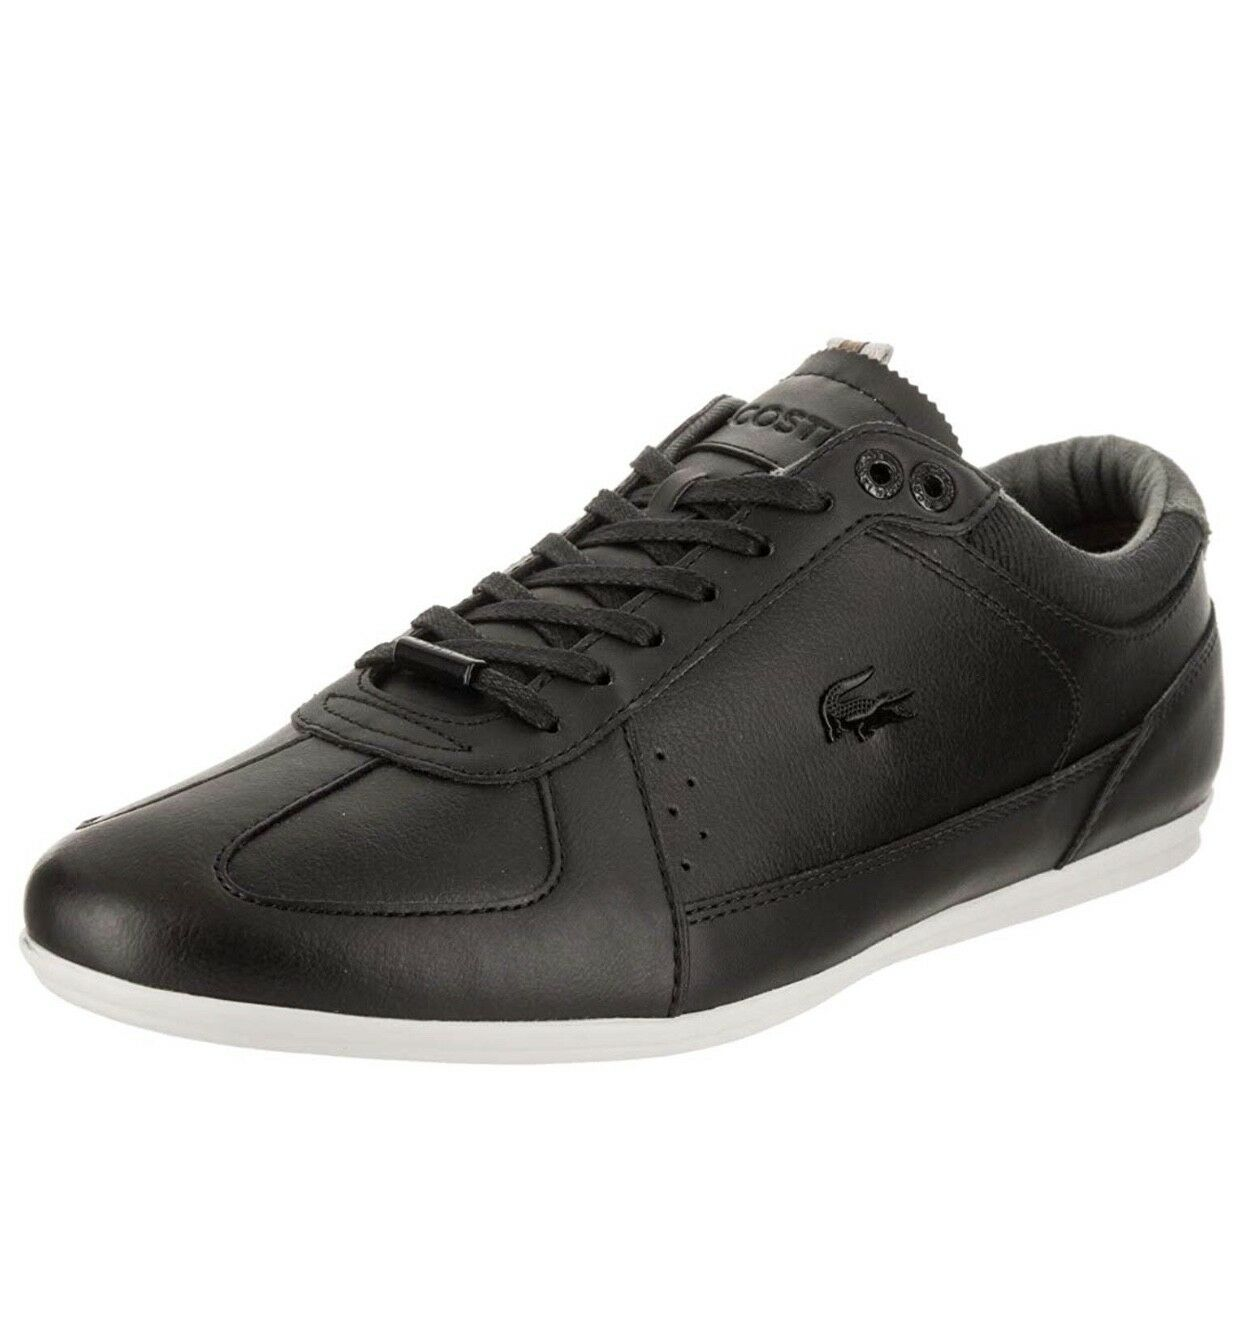 LACOSTE EVARA 318 LEATHER BLACK OFF WHITE 7-36CAM0024454 MEN SHOES S-B